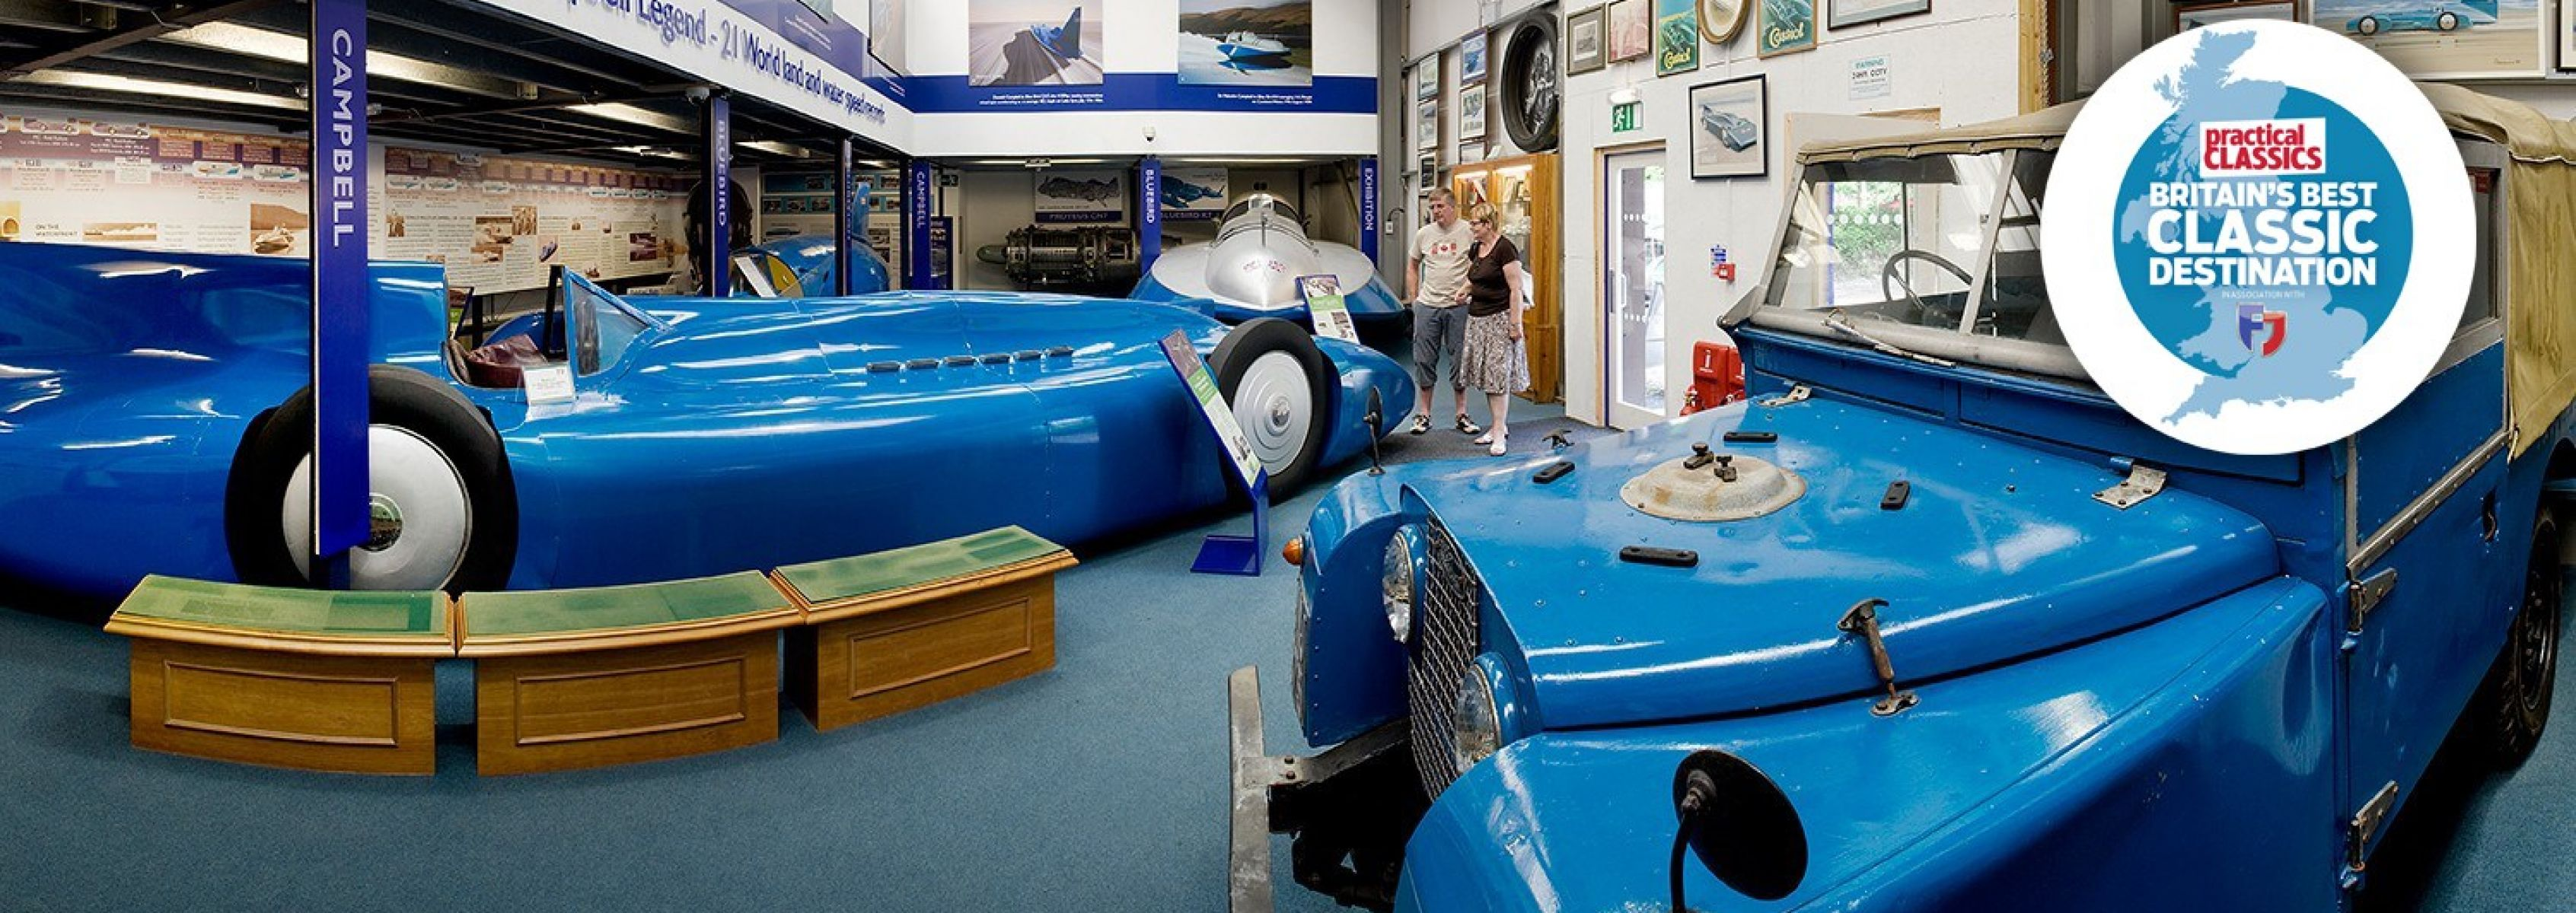 <p>Visit our tribute to the racing Campbells, Sir Malcolm and son Donald, who between them captured 21 world land and water speed records for Great Britain, in the Bluebird series of cars and boats.</p>